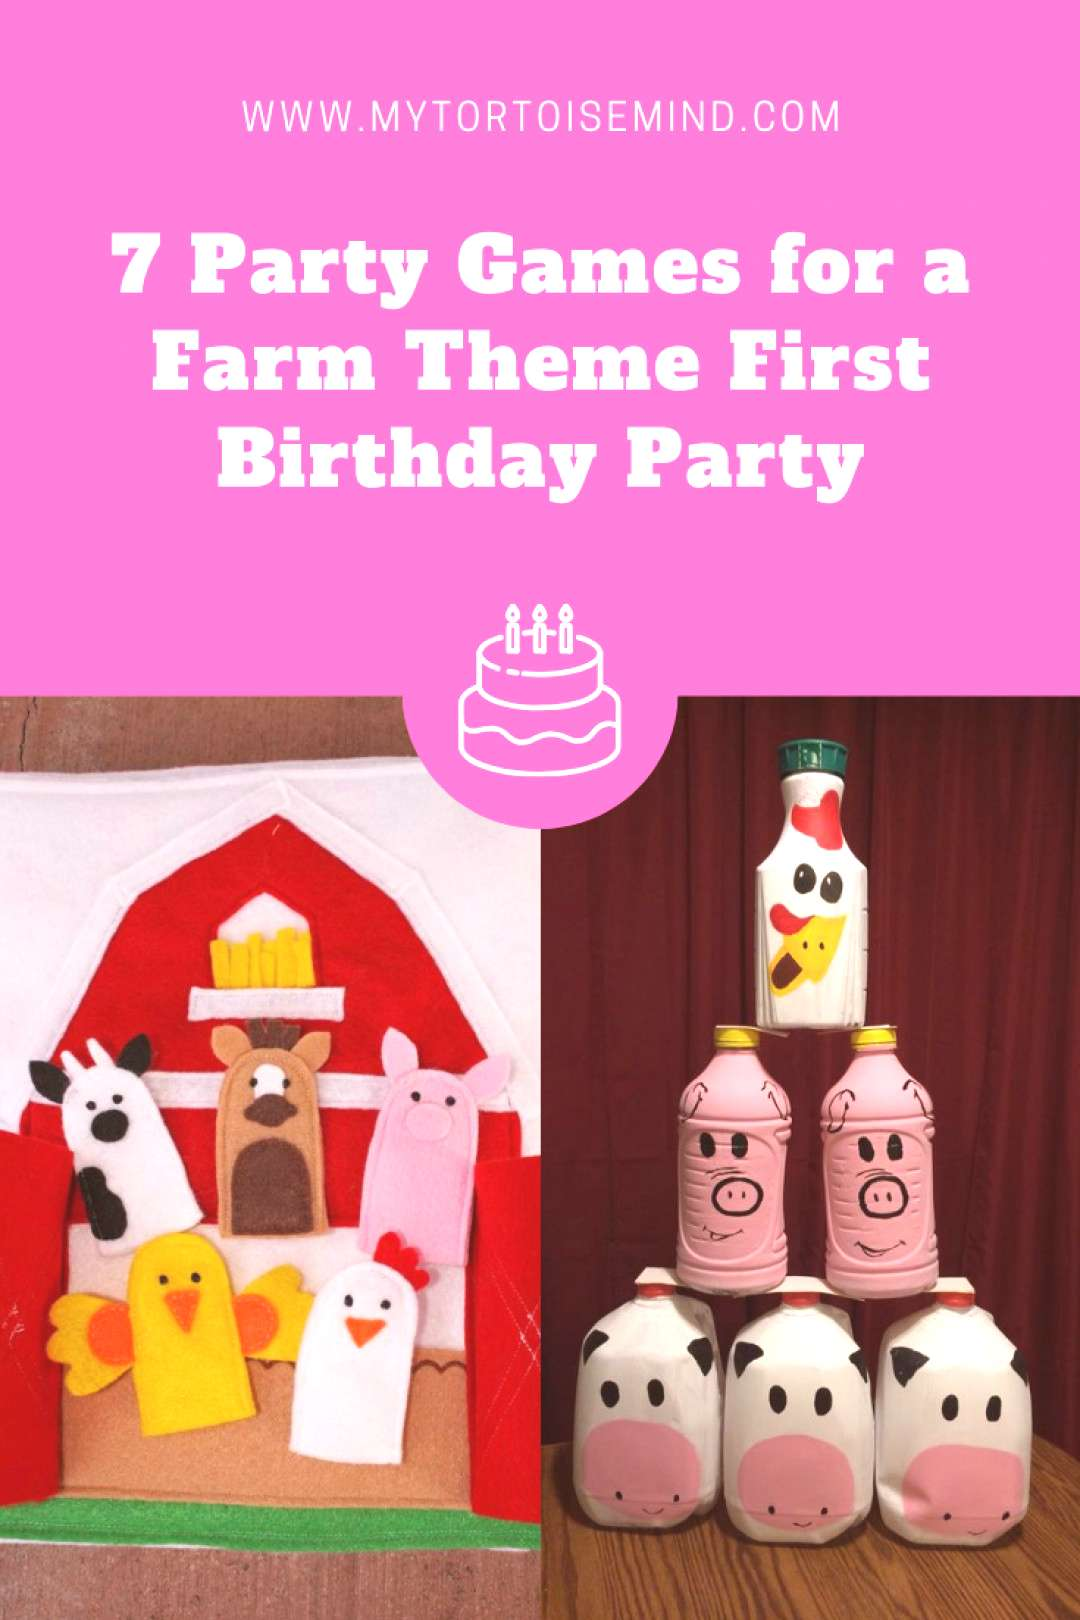 7 great party games and activities for a farm theme first birthday party